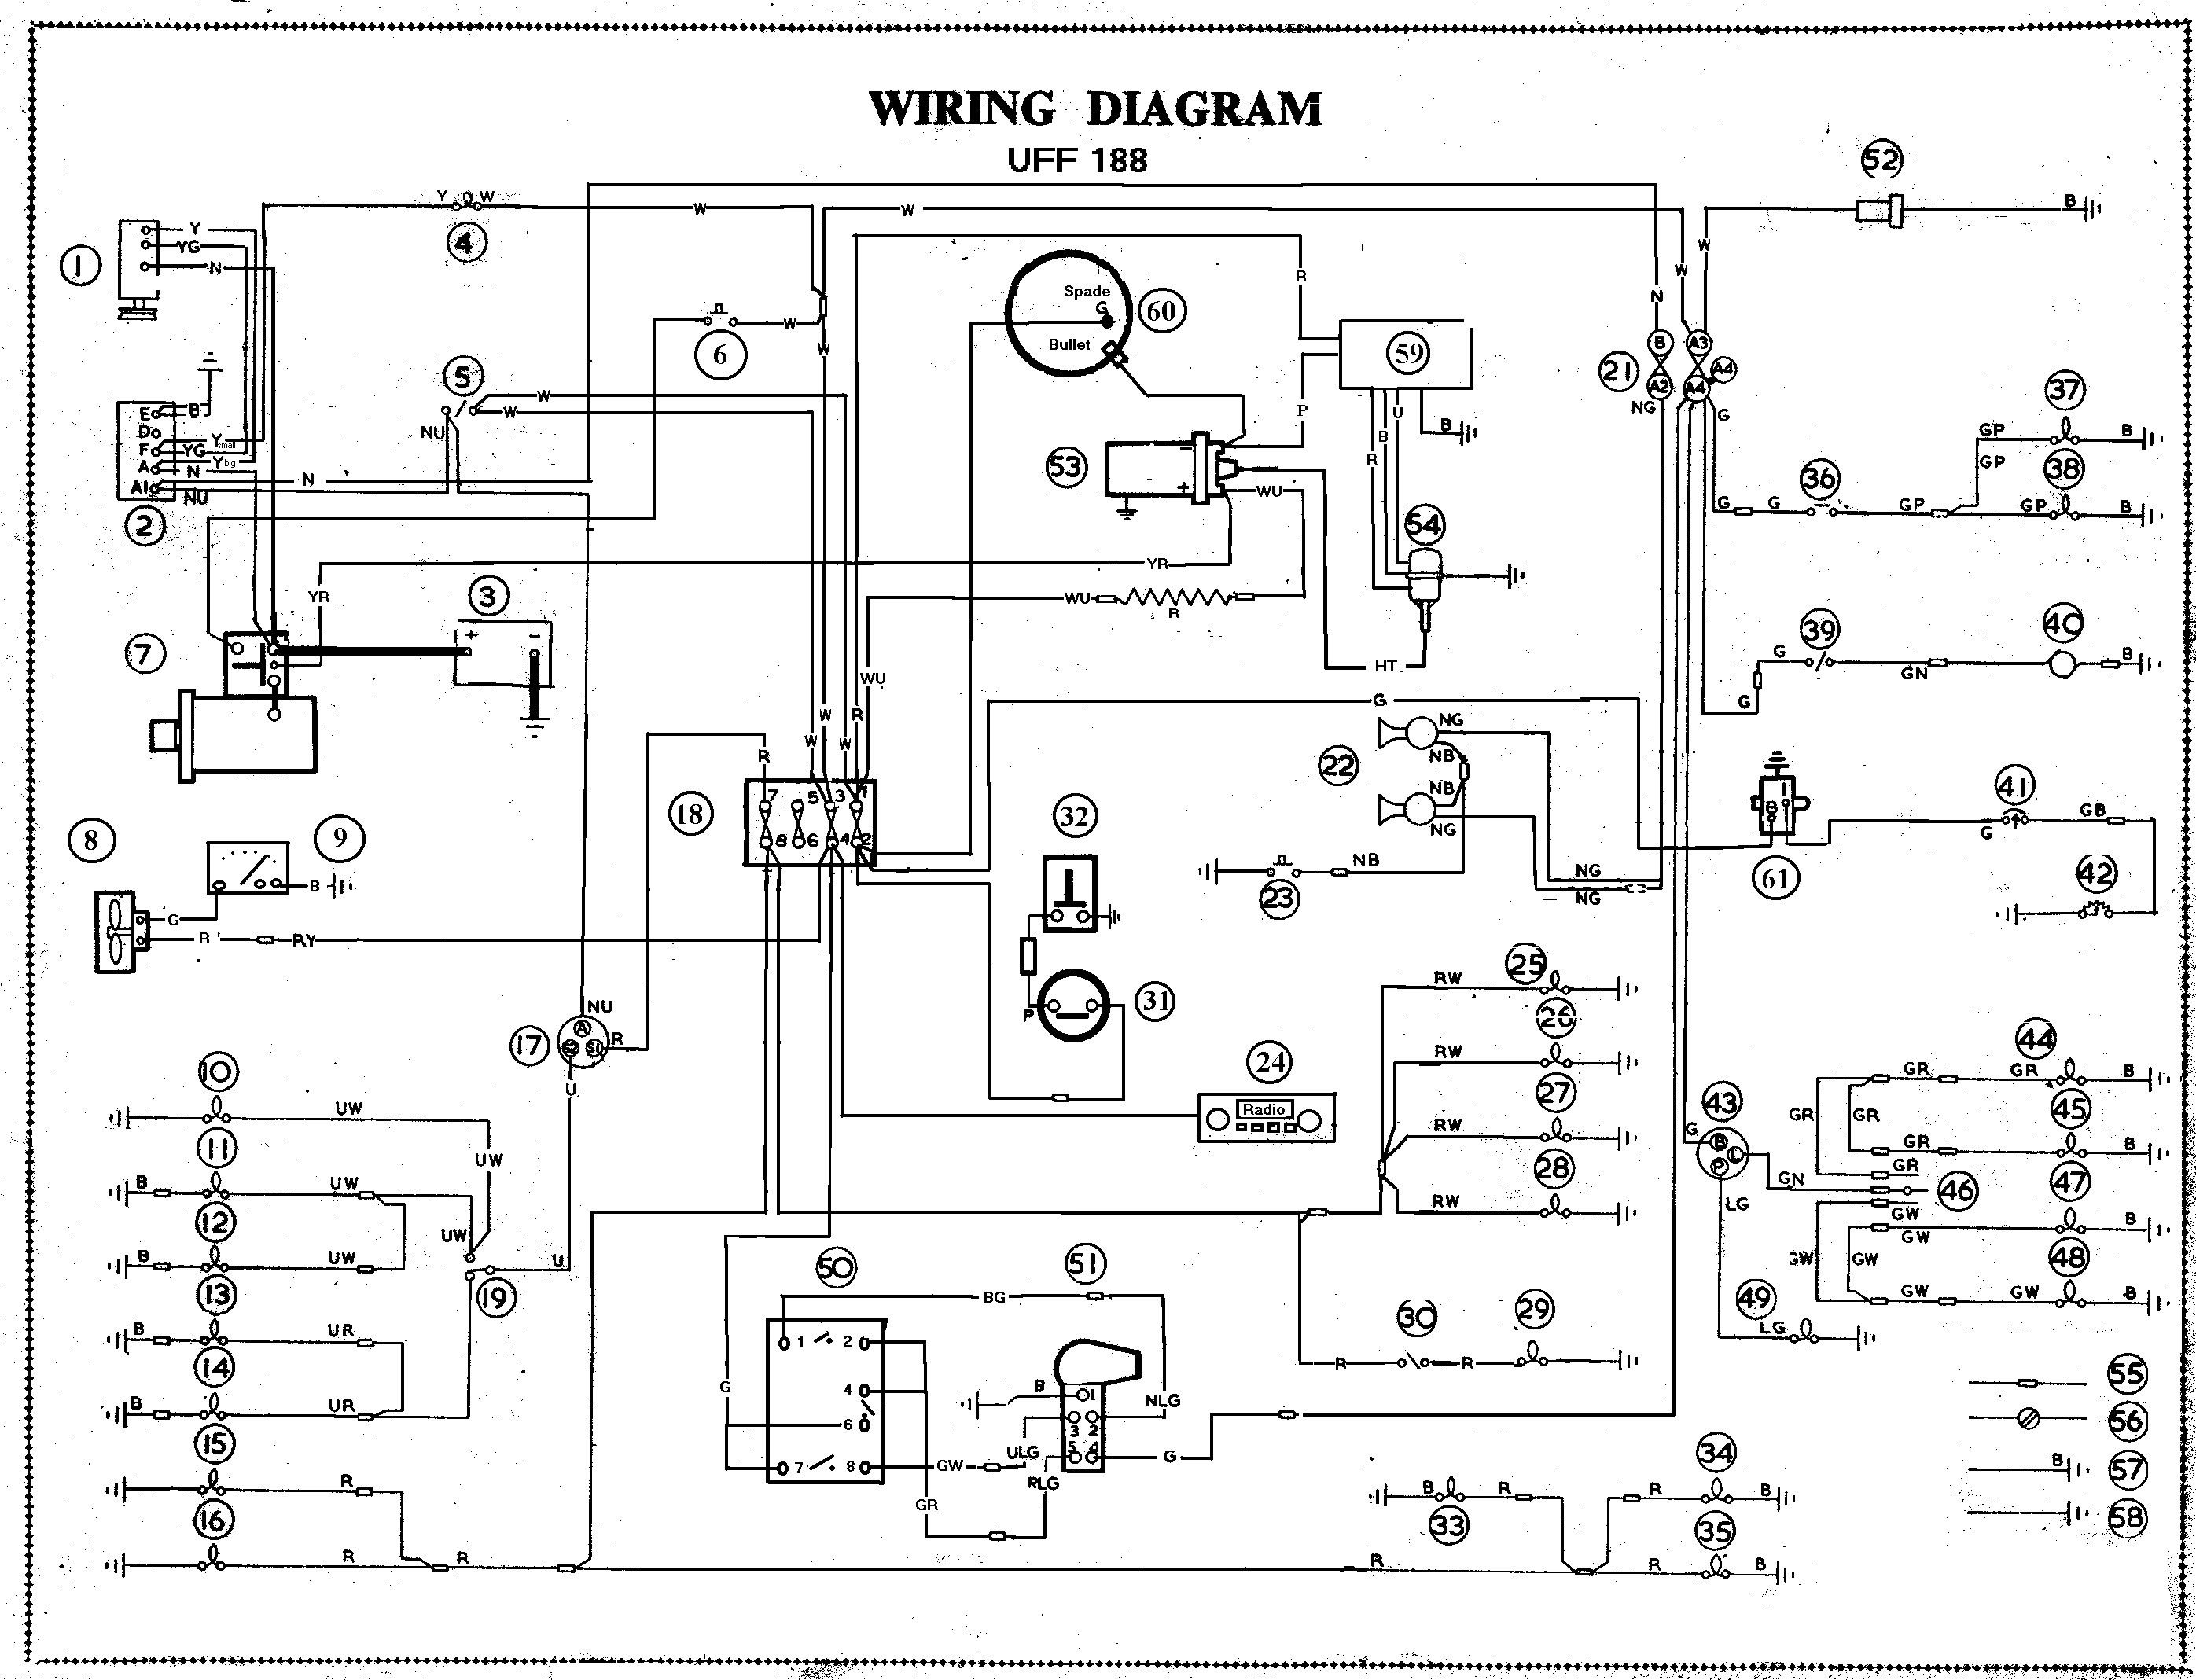 reading schematics wiring diagrams new how to read schematics diagram diagram wiringdiagram  diagram diagram wiringdiagram